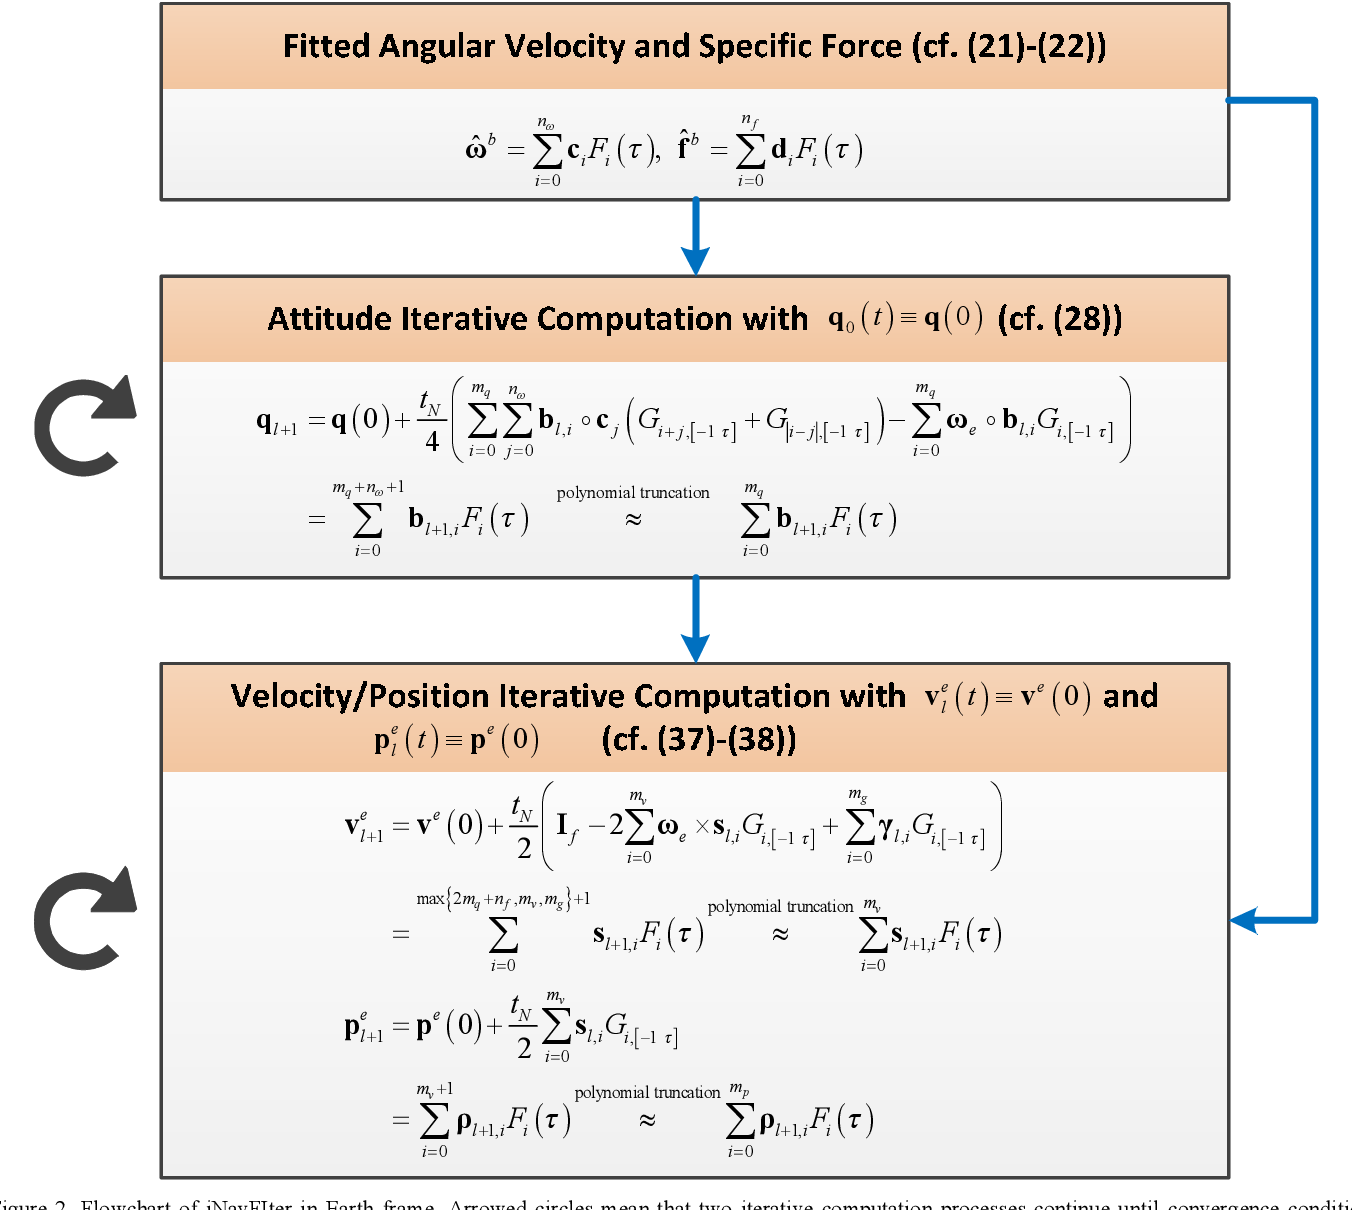 Figure 2 for Next-Generation Inertial Navigation Computation Based on Functional Iteration